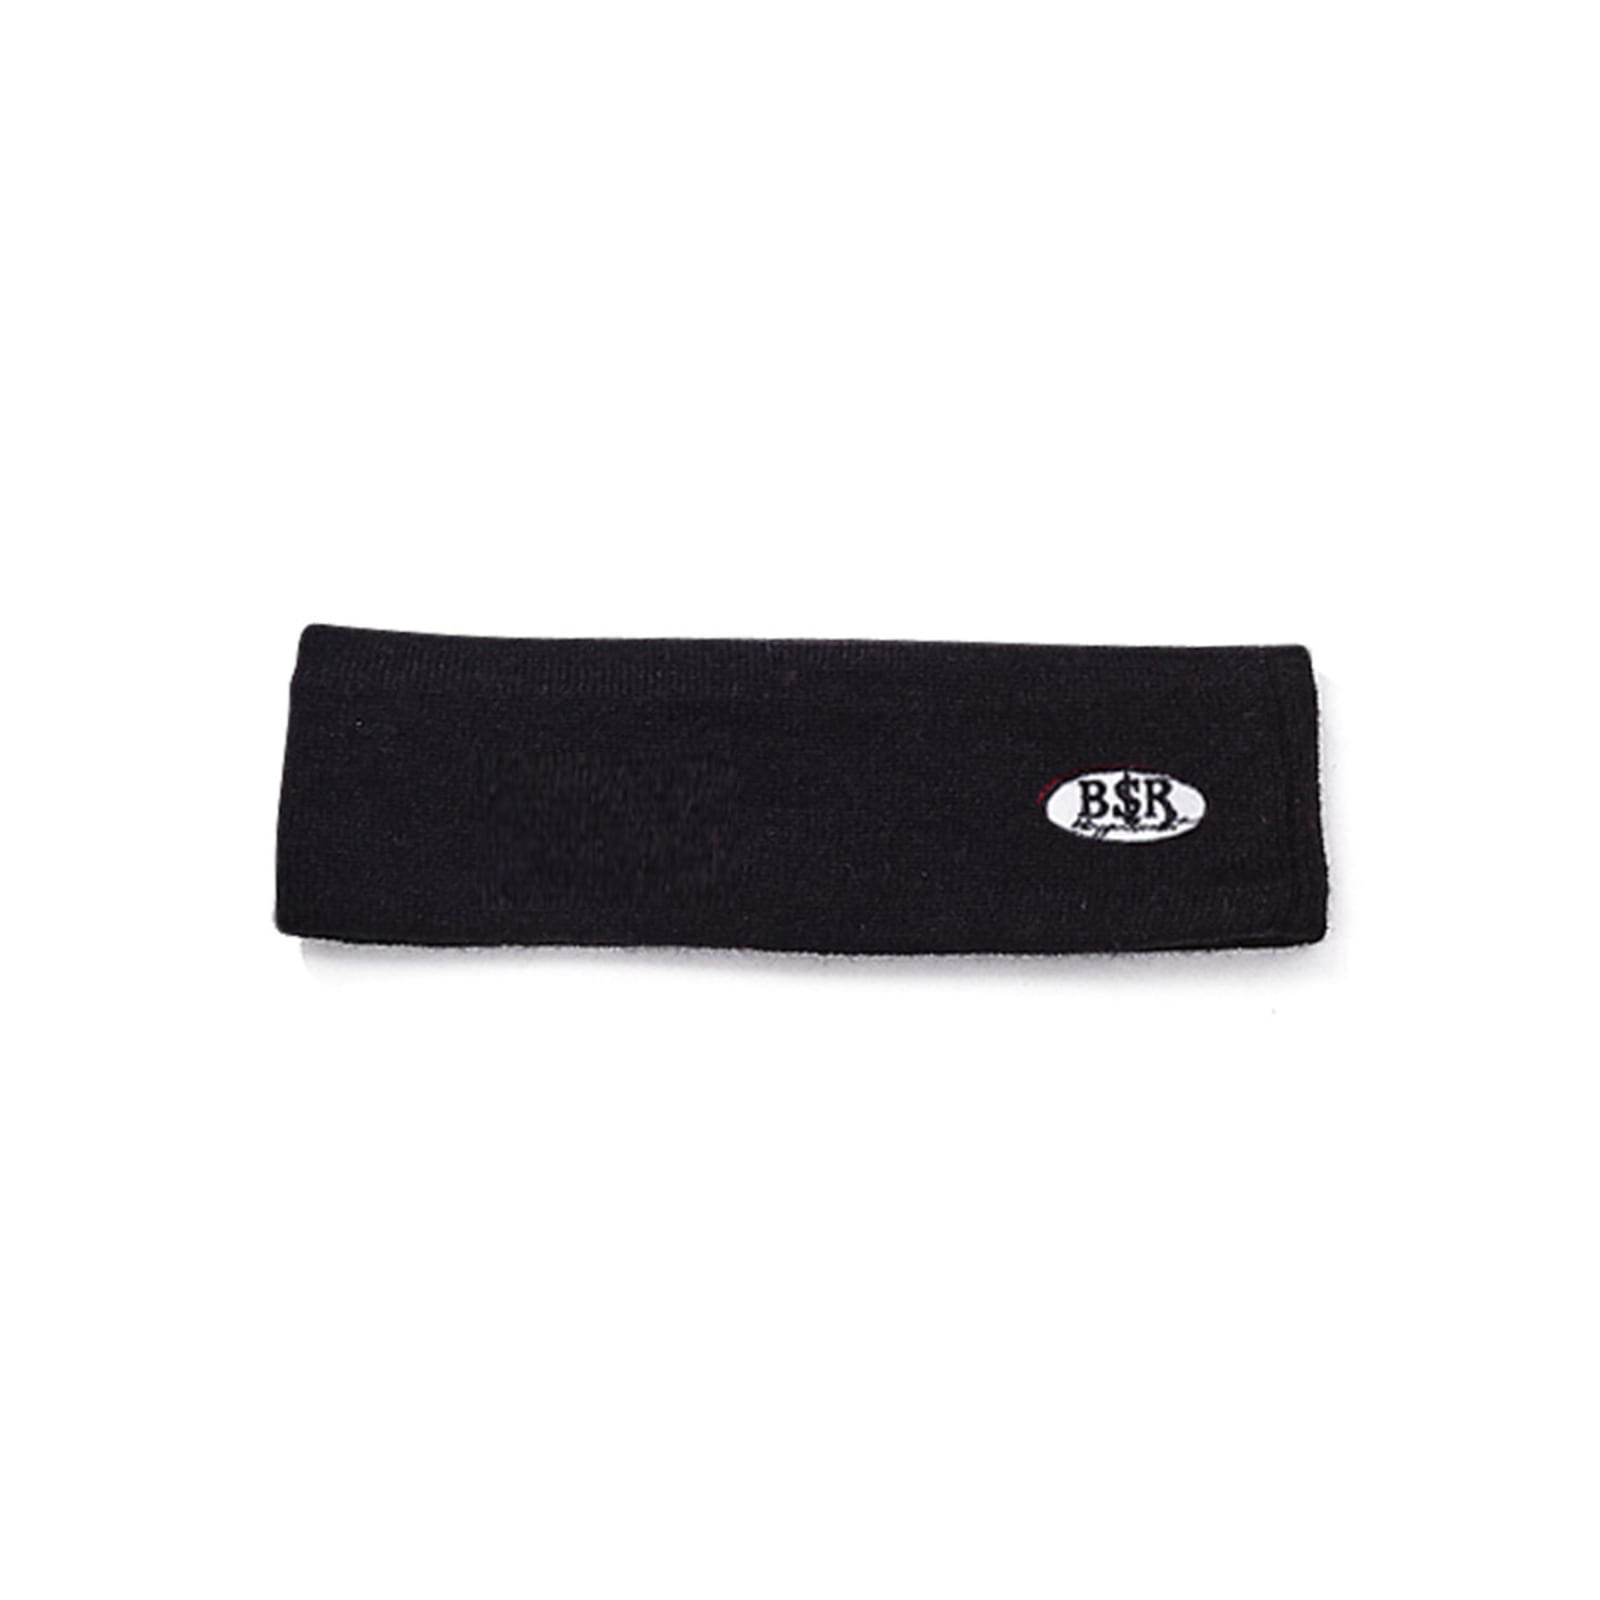 BSR WAPPEN KNIT HEADBAND BLACK